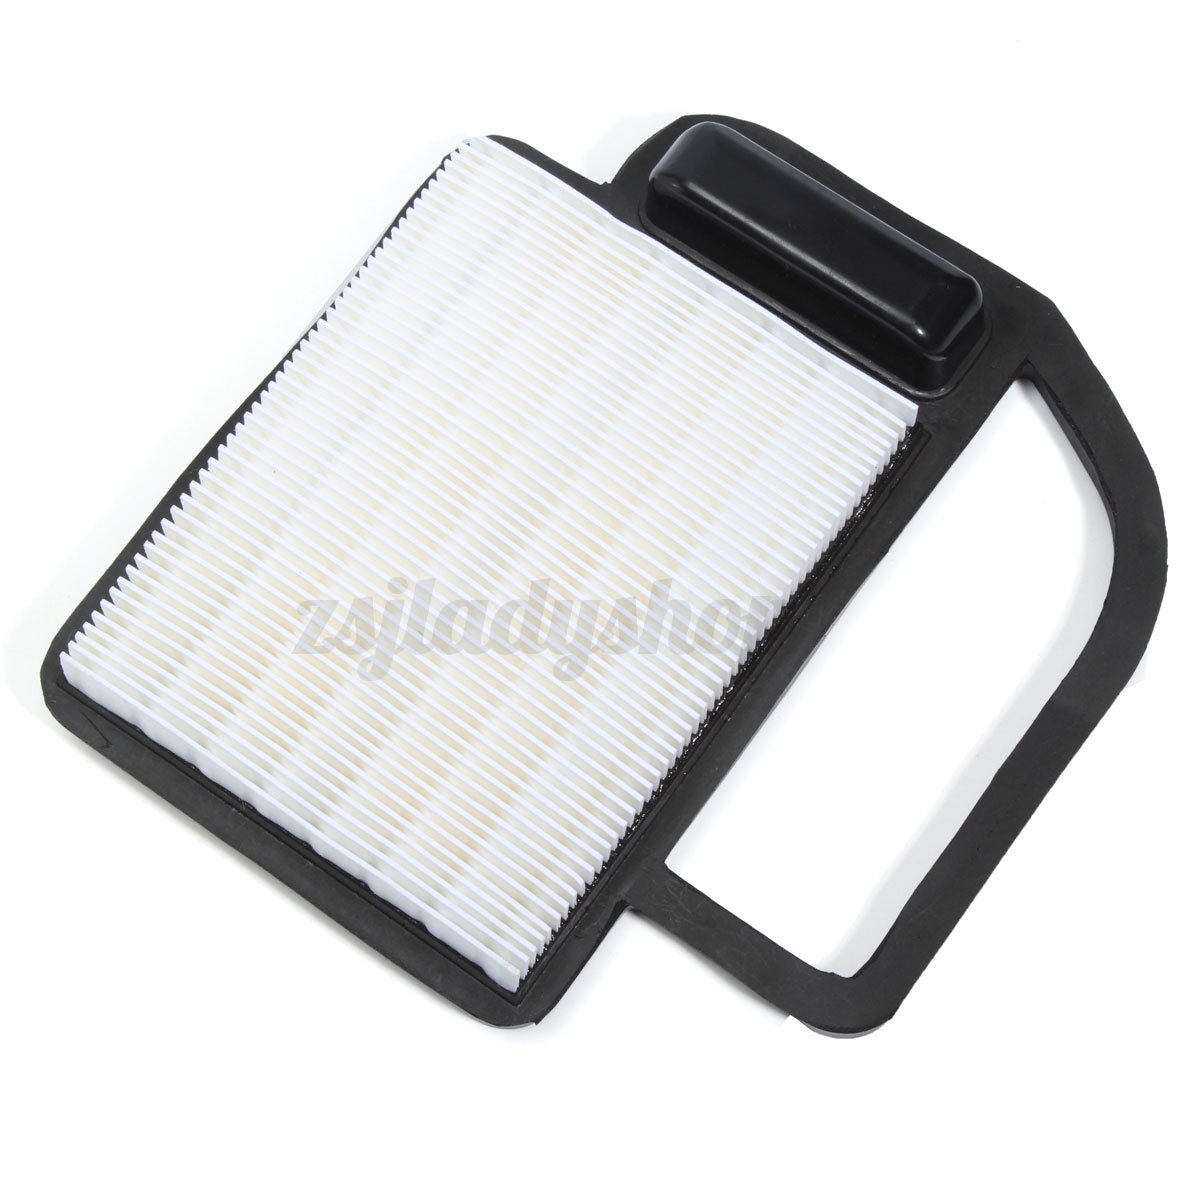 Replacement Air Filter For Tractors : Mower air filter lawn tractor replace for kohler courage